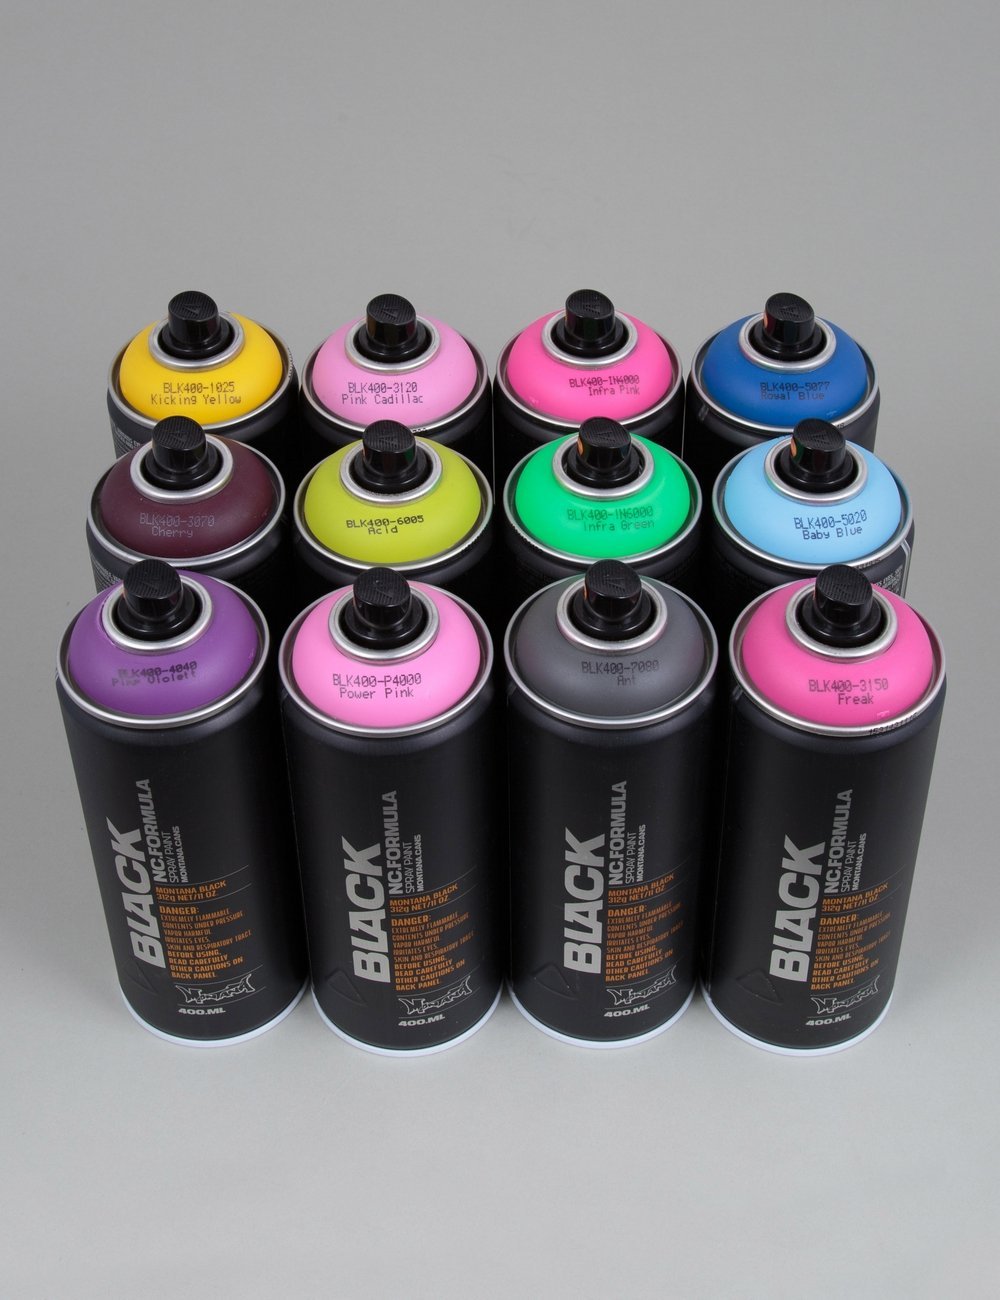 Montana black spray paint deal 12 cans spray paint supplies from iconsume uk Spray paint supplies